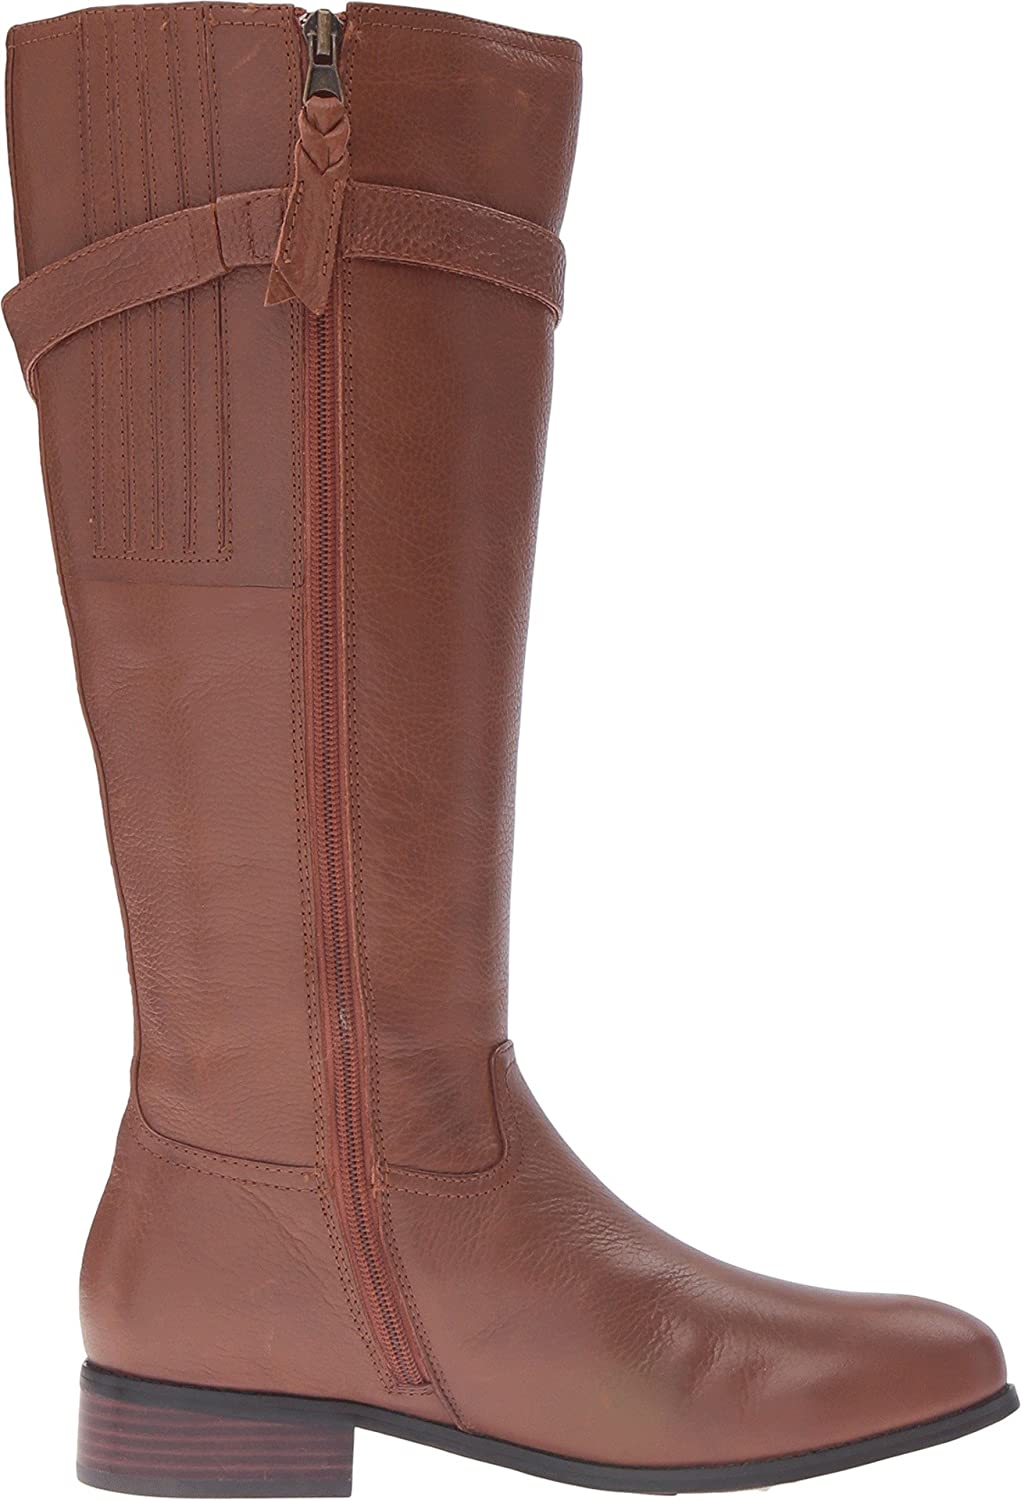 Trotters Women's Lyra Lyra Lyra Wide Calf Riding Boot B019QTSZHA 6.5 XW US|Cognac Veg Tumbled Leather 01c3c4